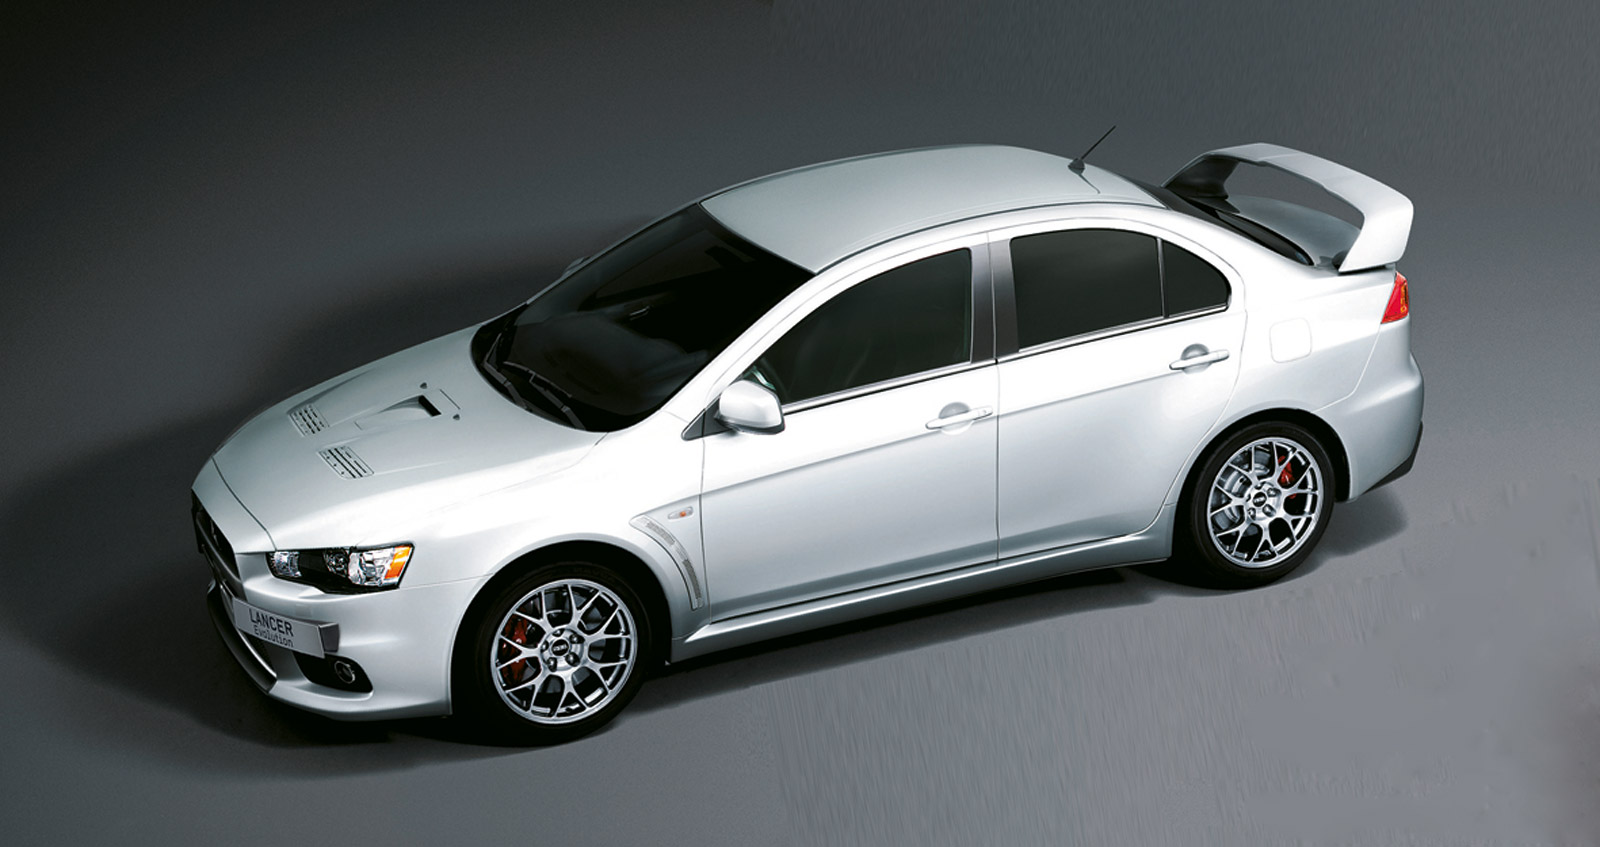 Mitsubishi Lancer Evolution X To Be Discontinued This Year Report